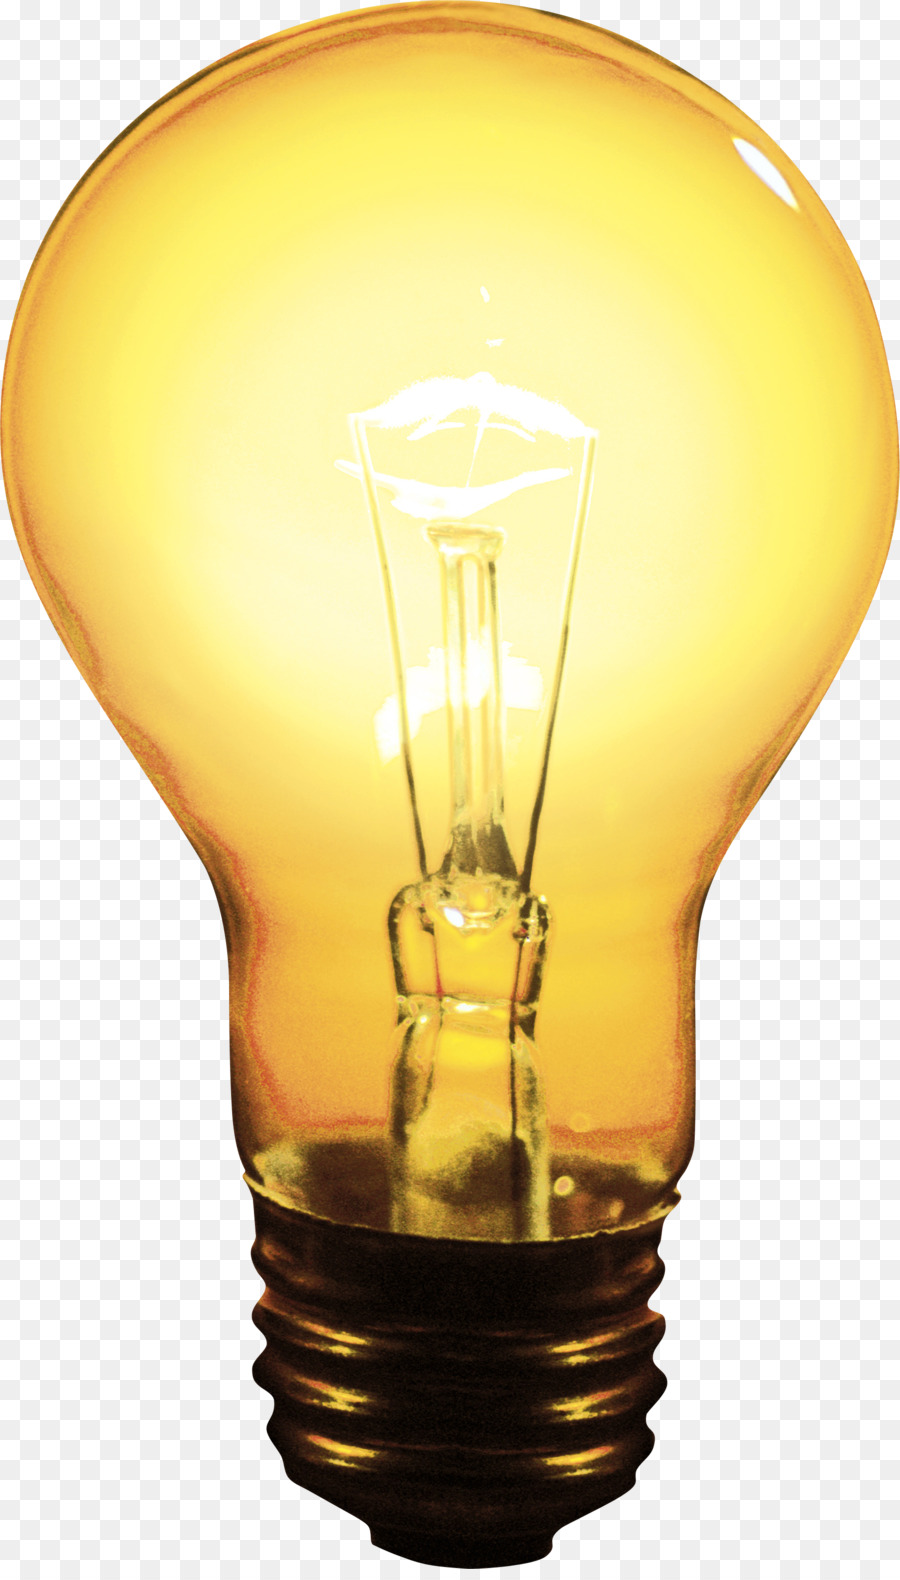 Electrical clipart electric lamp. Light bulb cartoon electricity